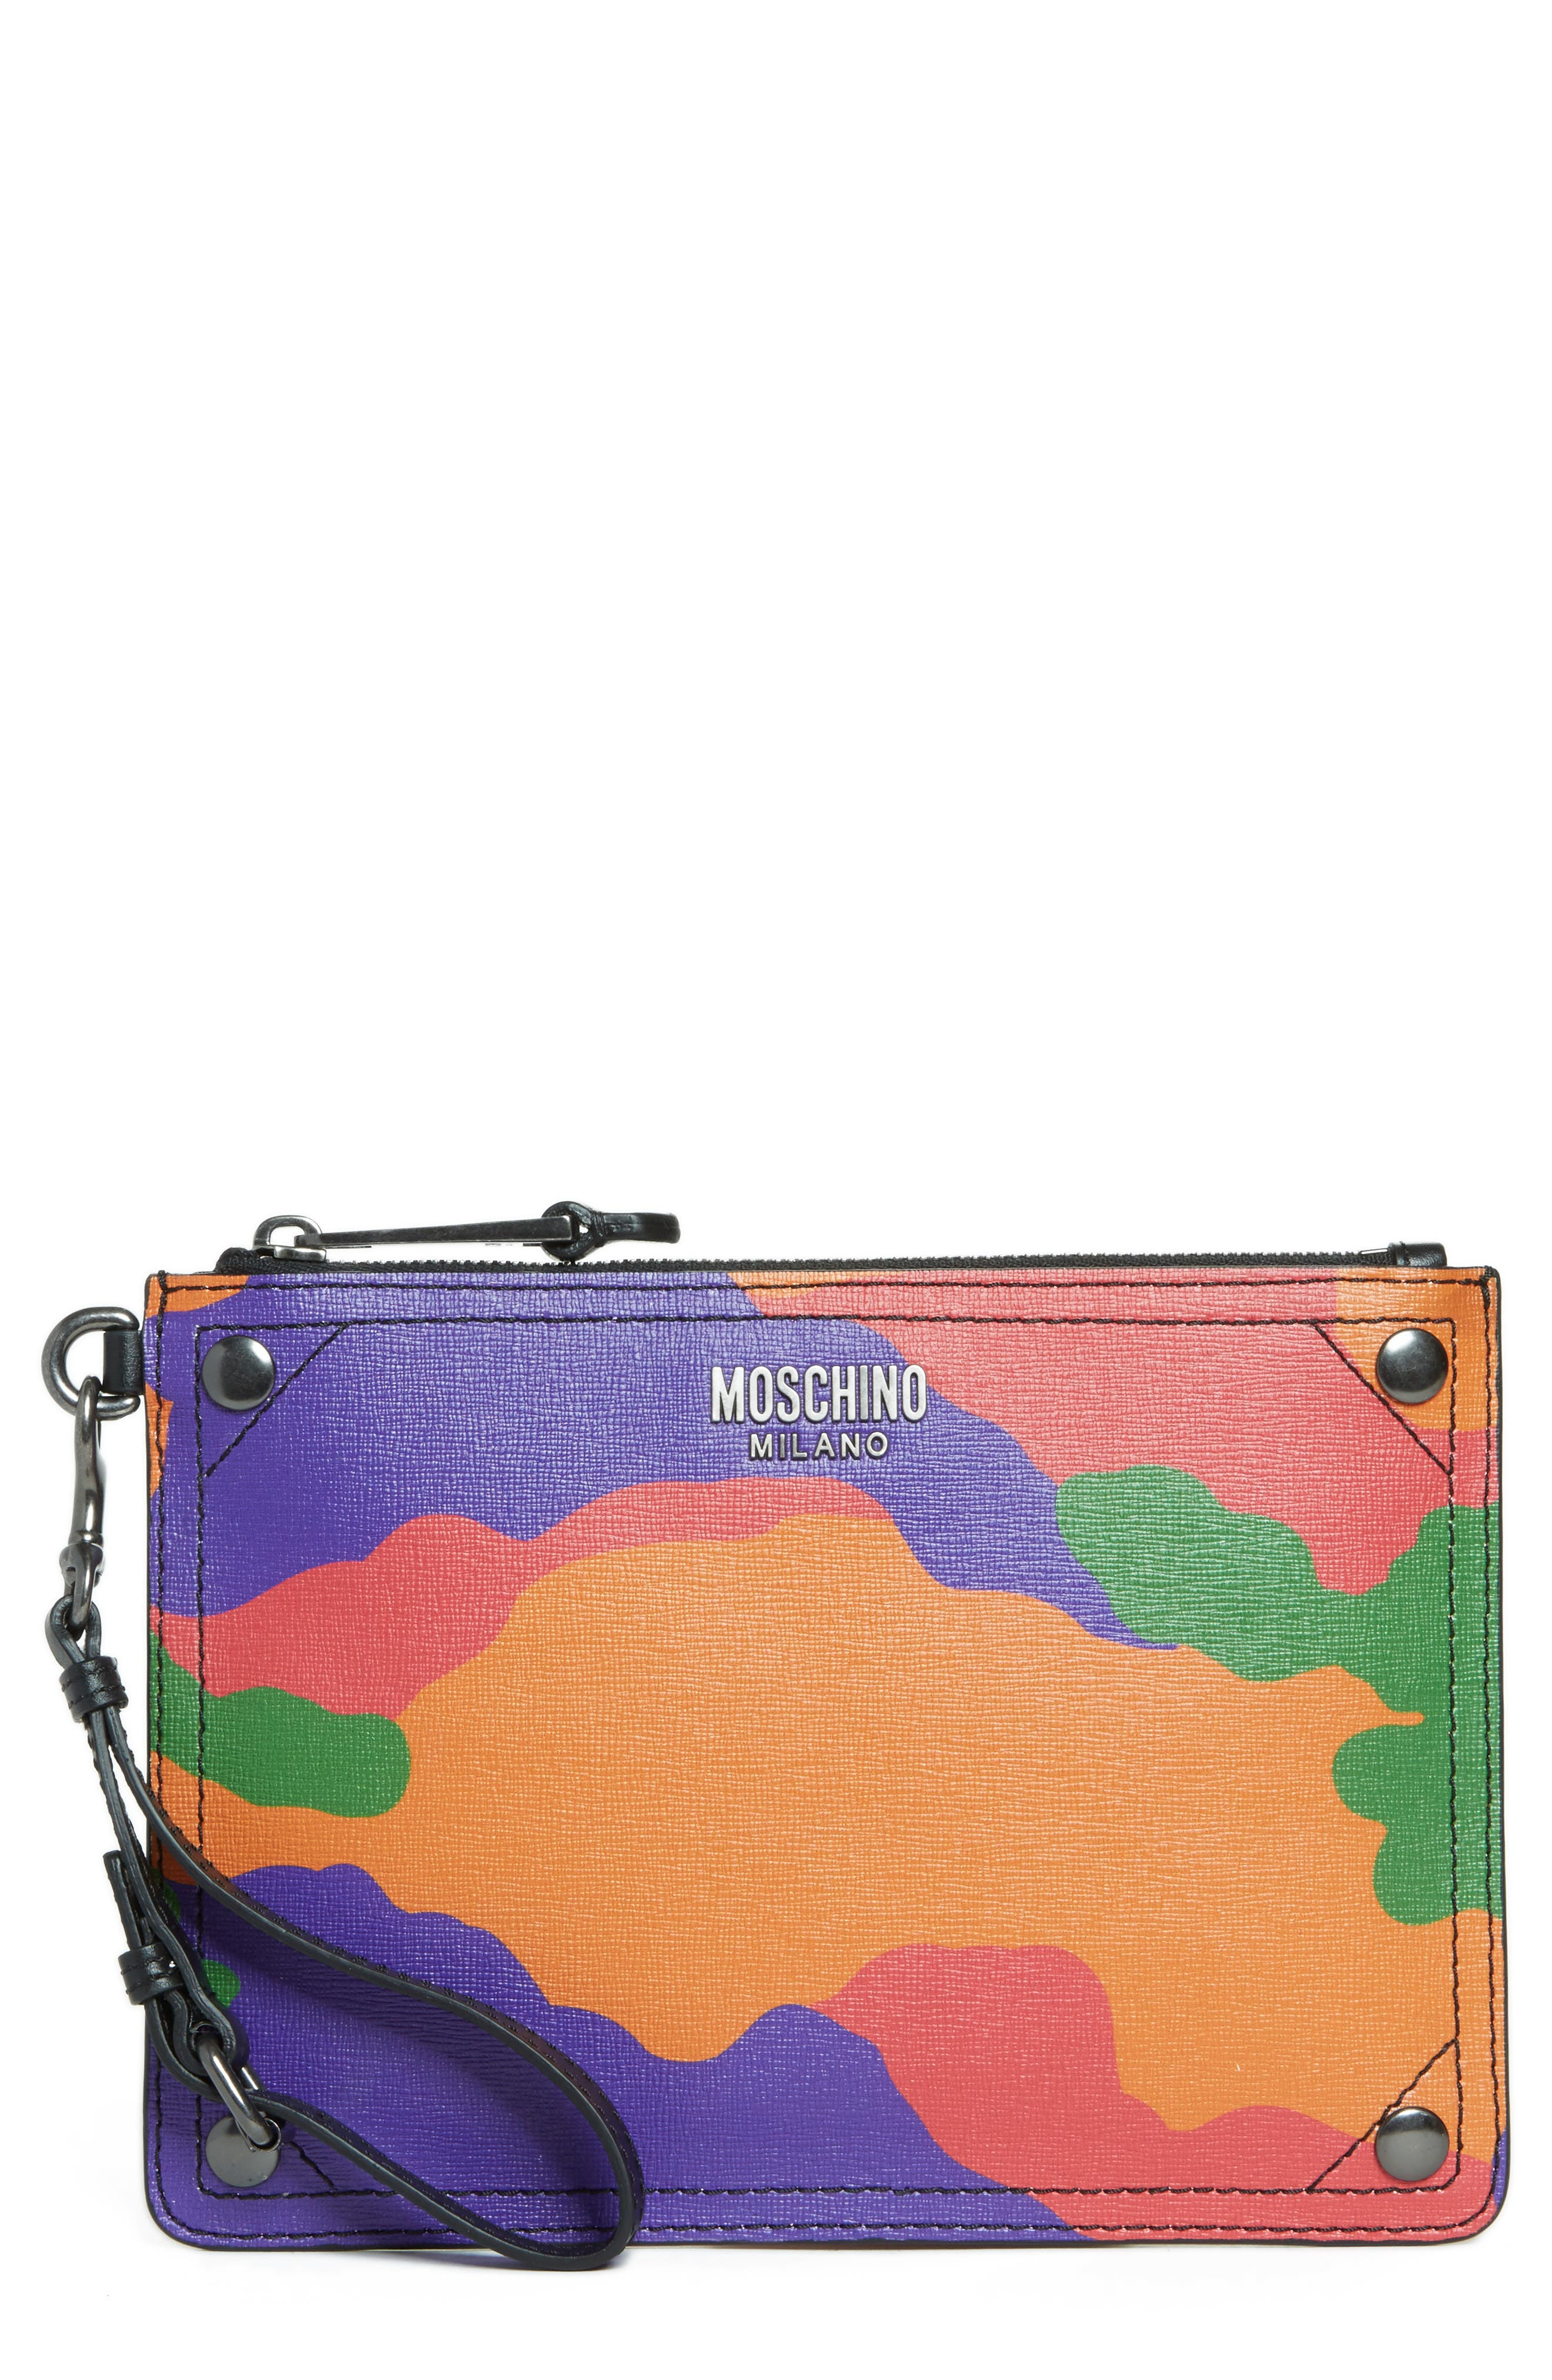 Alternate Image 1 Selected - Moschino Multi Camo Print Leather Zip Pouch Wristlet